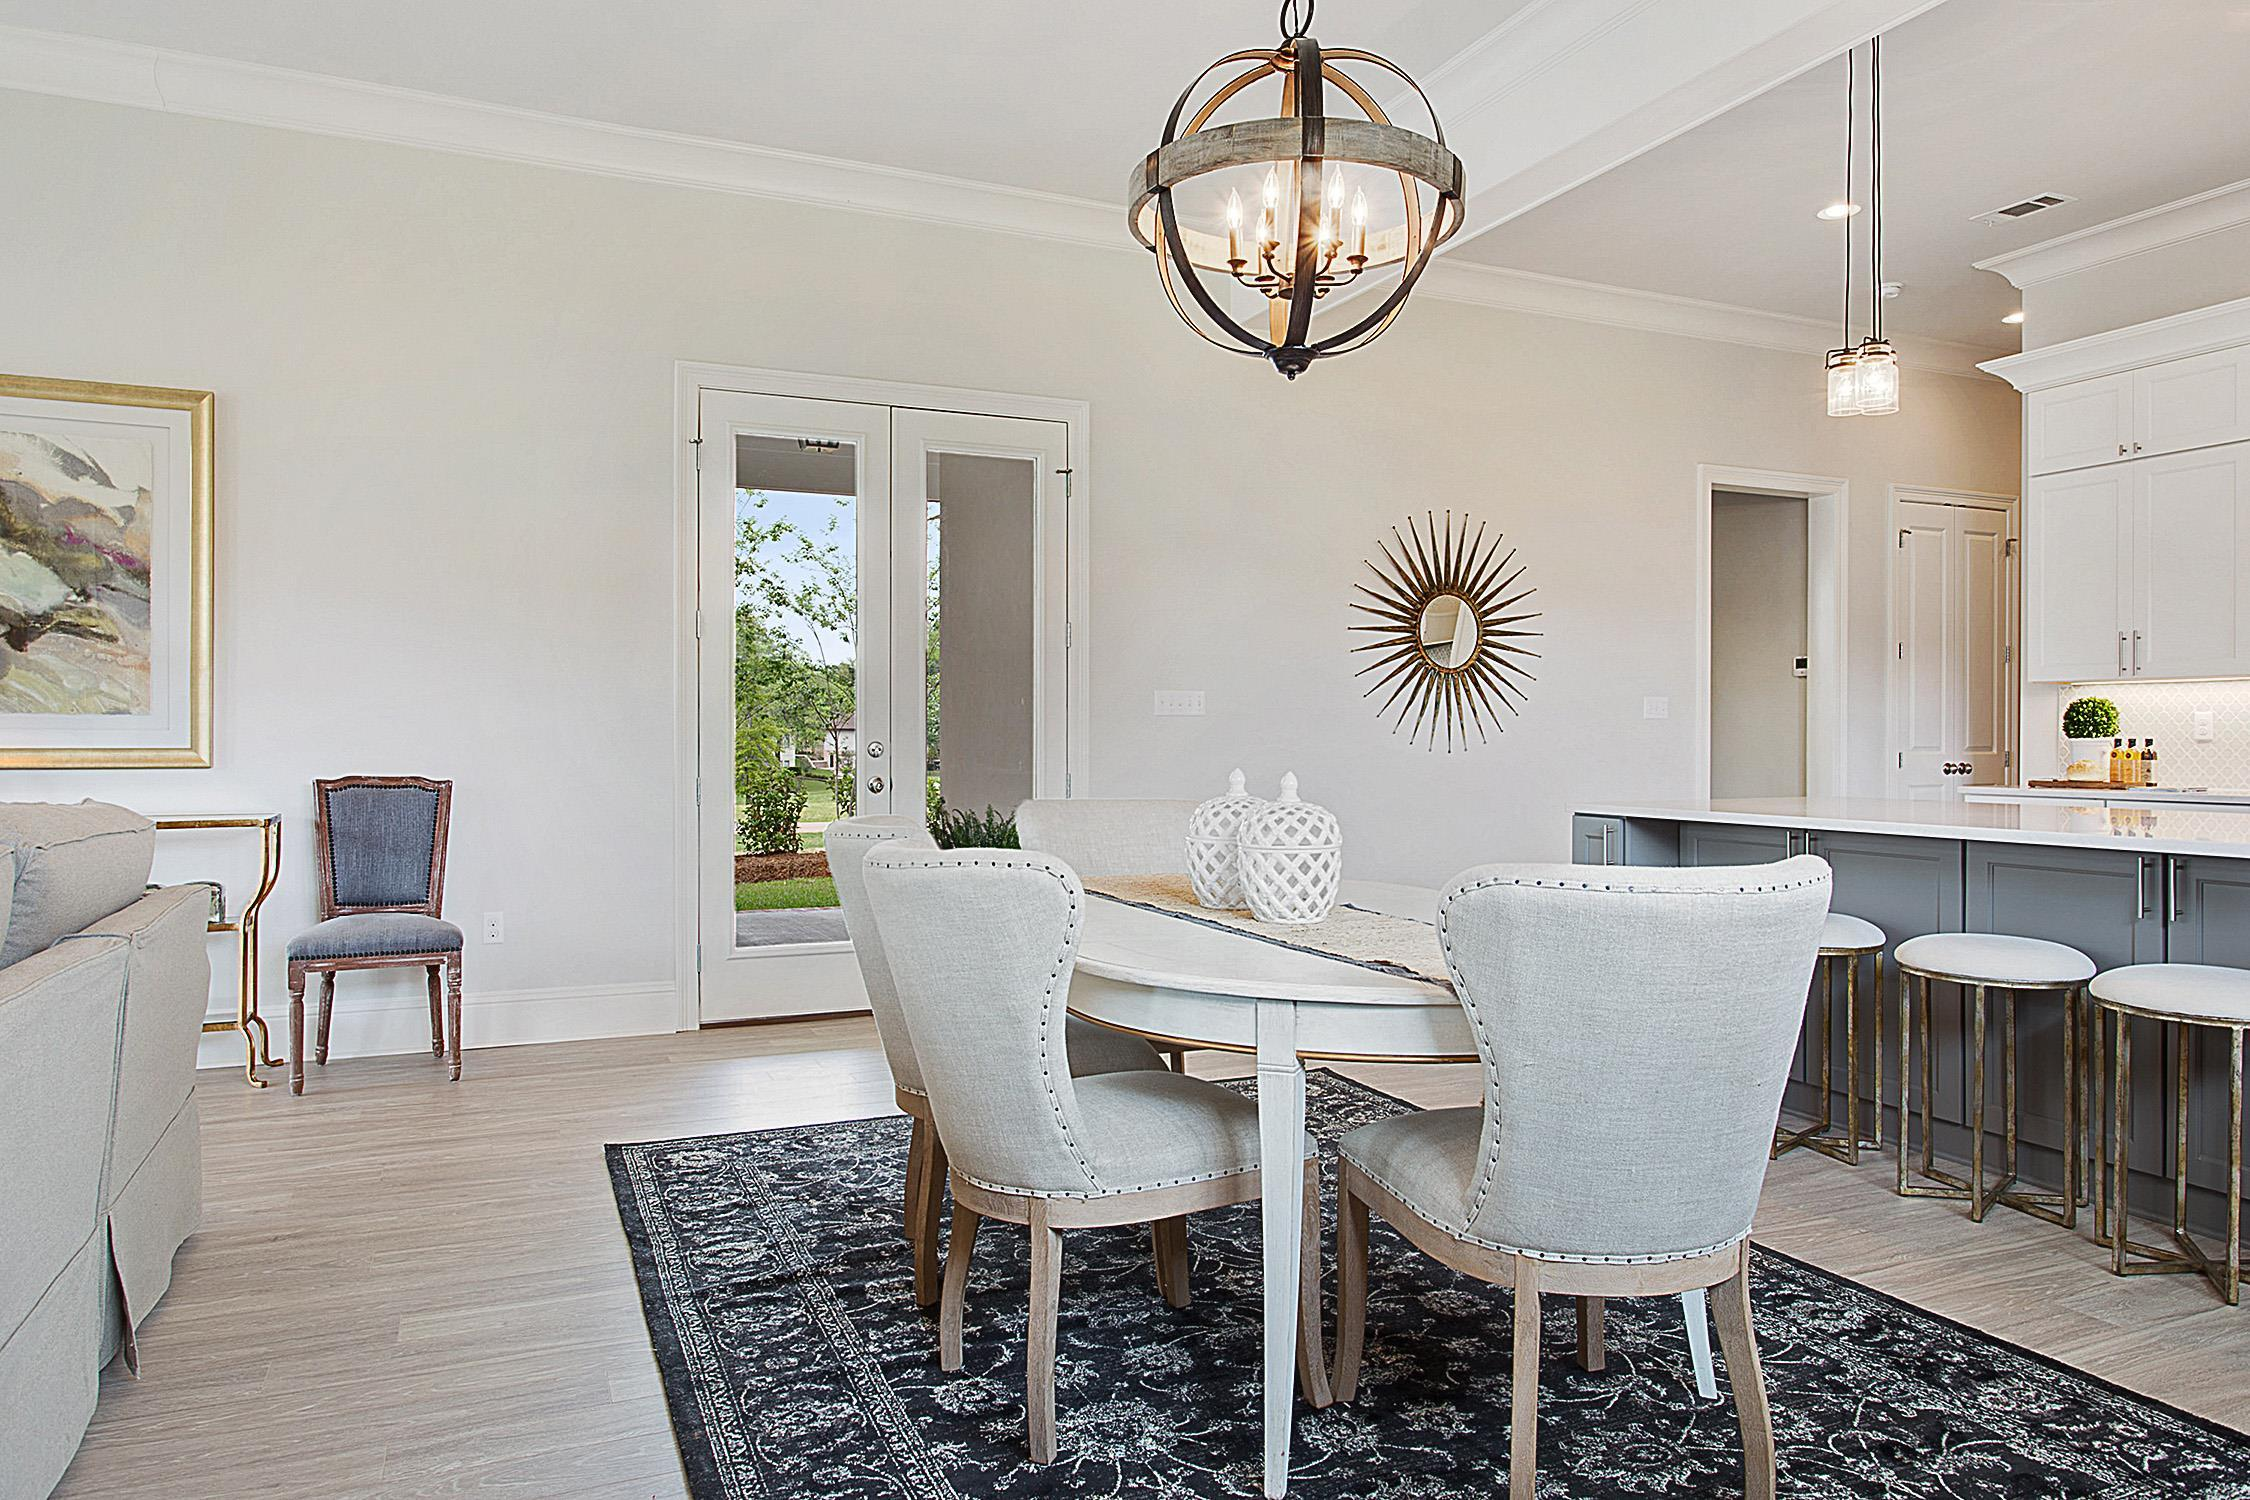 Living Area featured in the Fountainbleau (3 Bed) By Highland Homes in New Orleans, LA